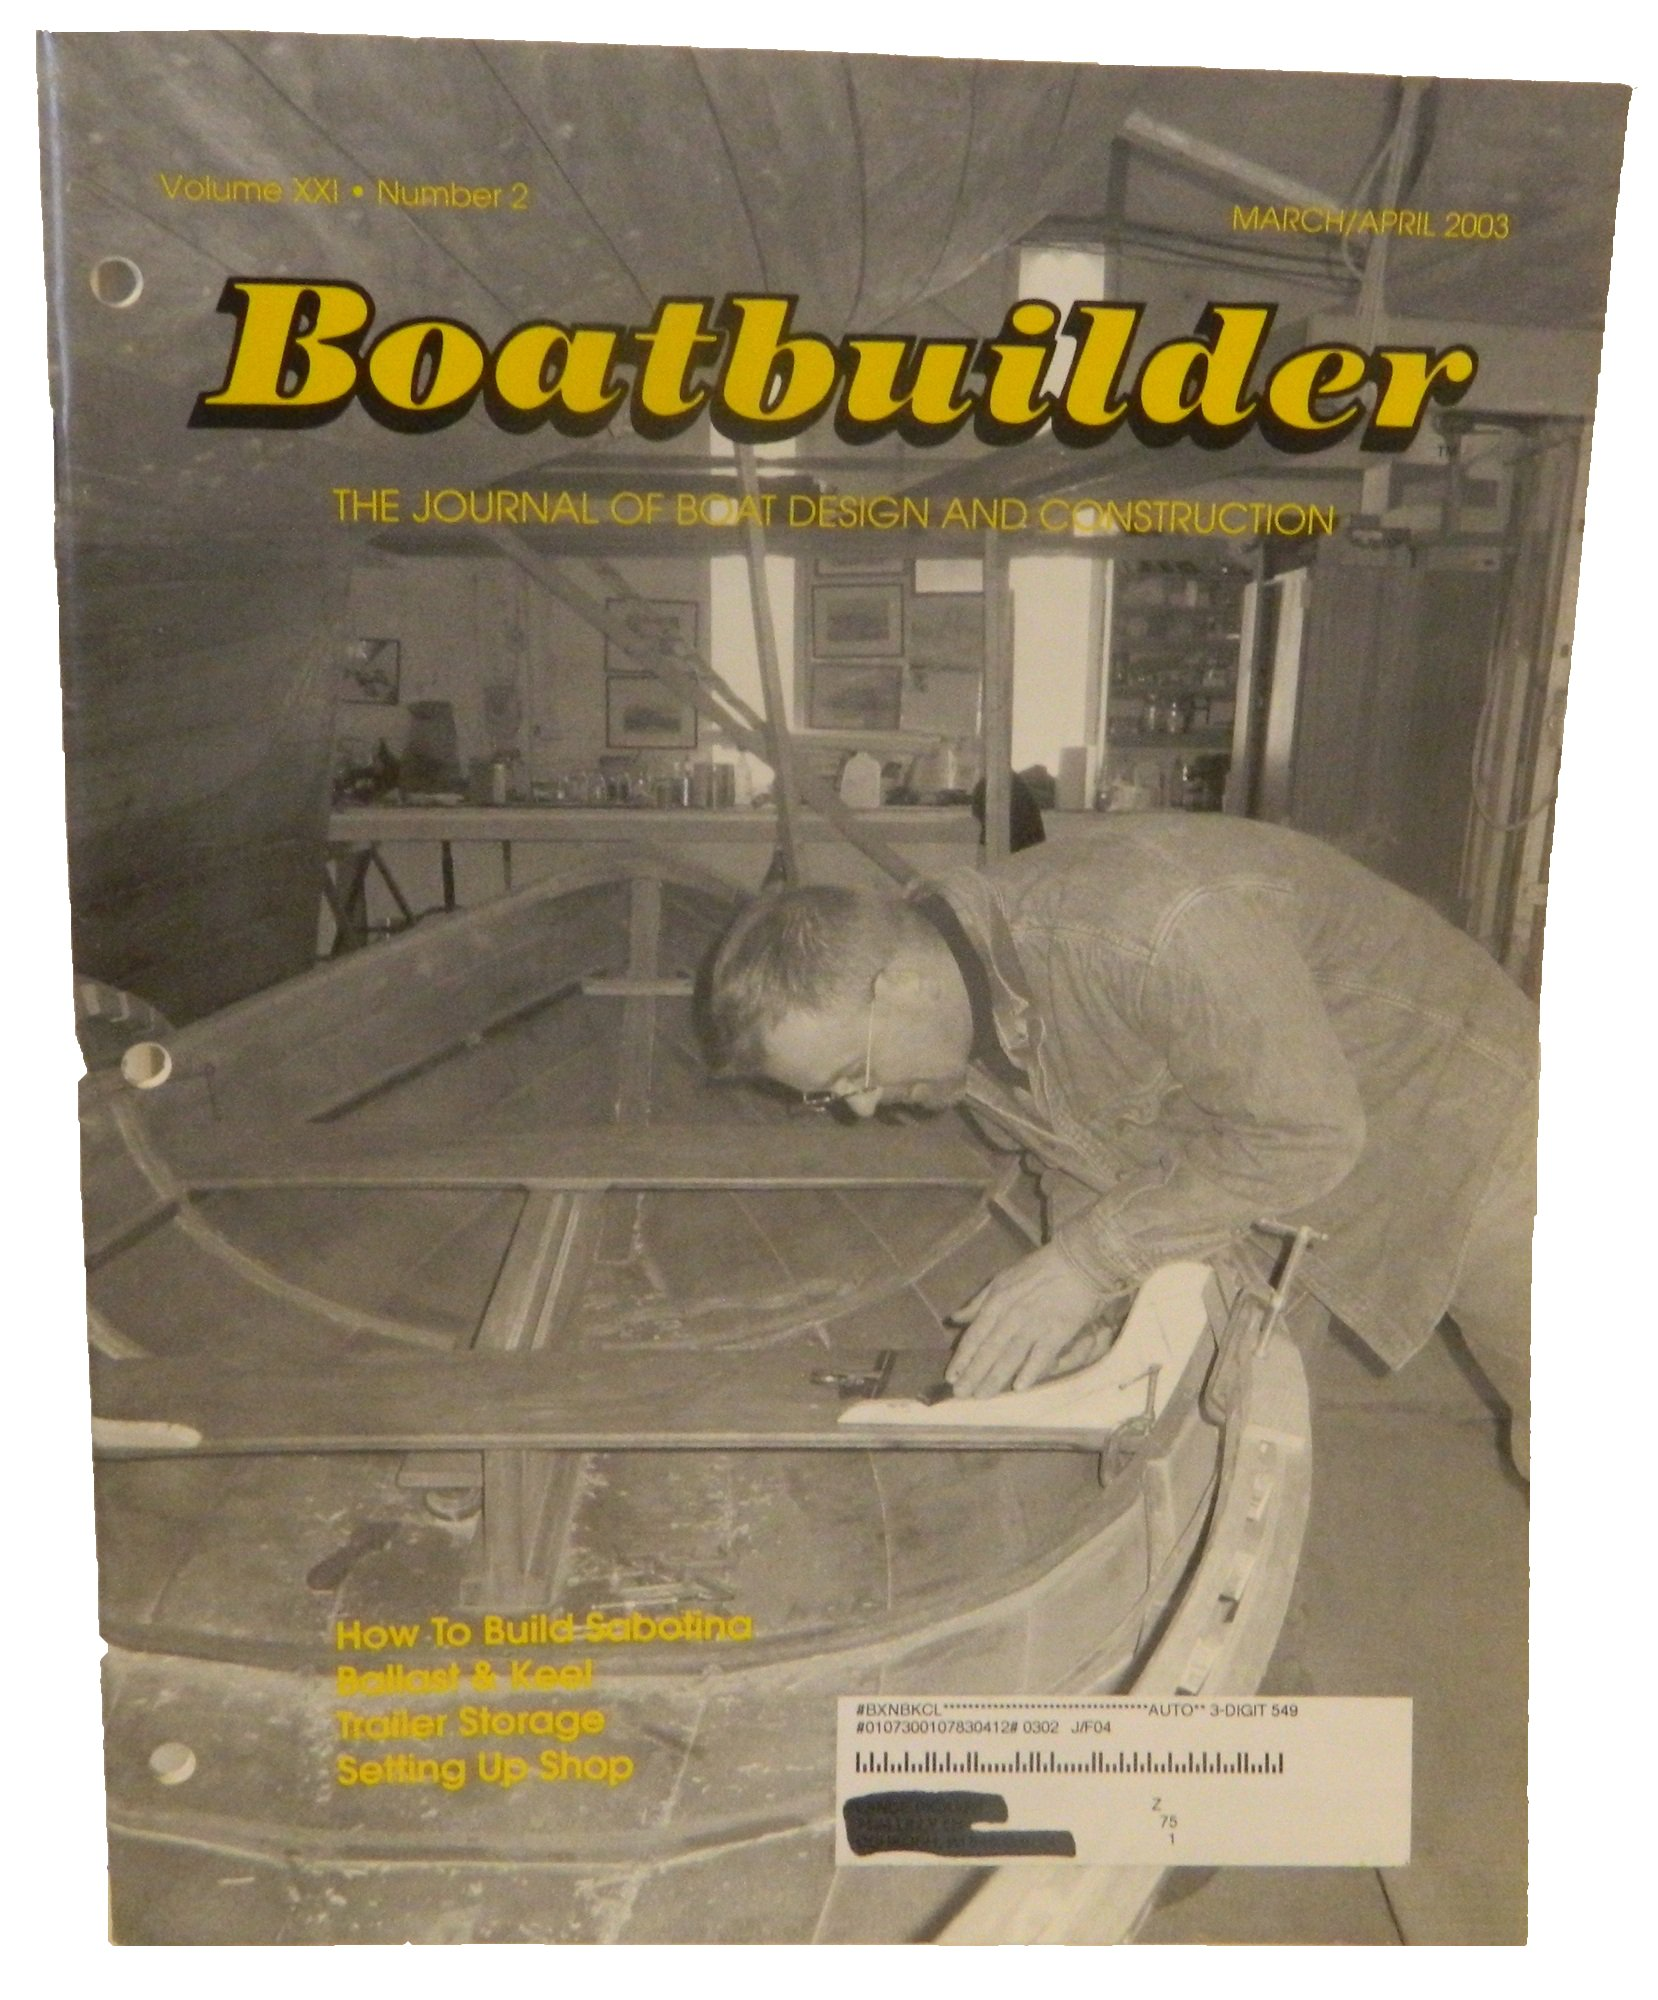 How to Build Sabotina / Ballast & Keel / In-Your-Garage Trailer Storage / Setting Up Shop: The First Problem of Building a Boat is Deciding Where to Build It (Boatbuilder: The Journal of Boat Design and Construction, Volume 21, Number 2, March/April 2003)